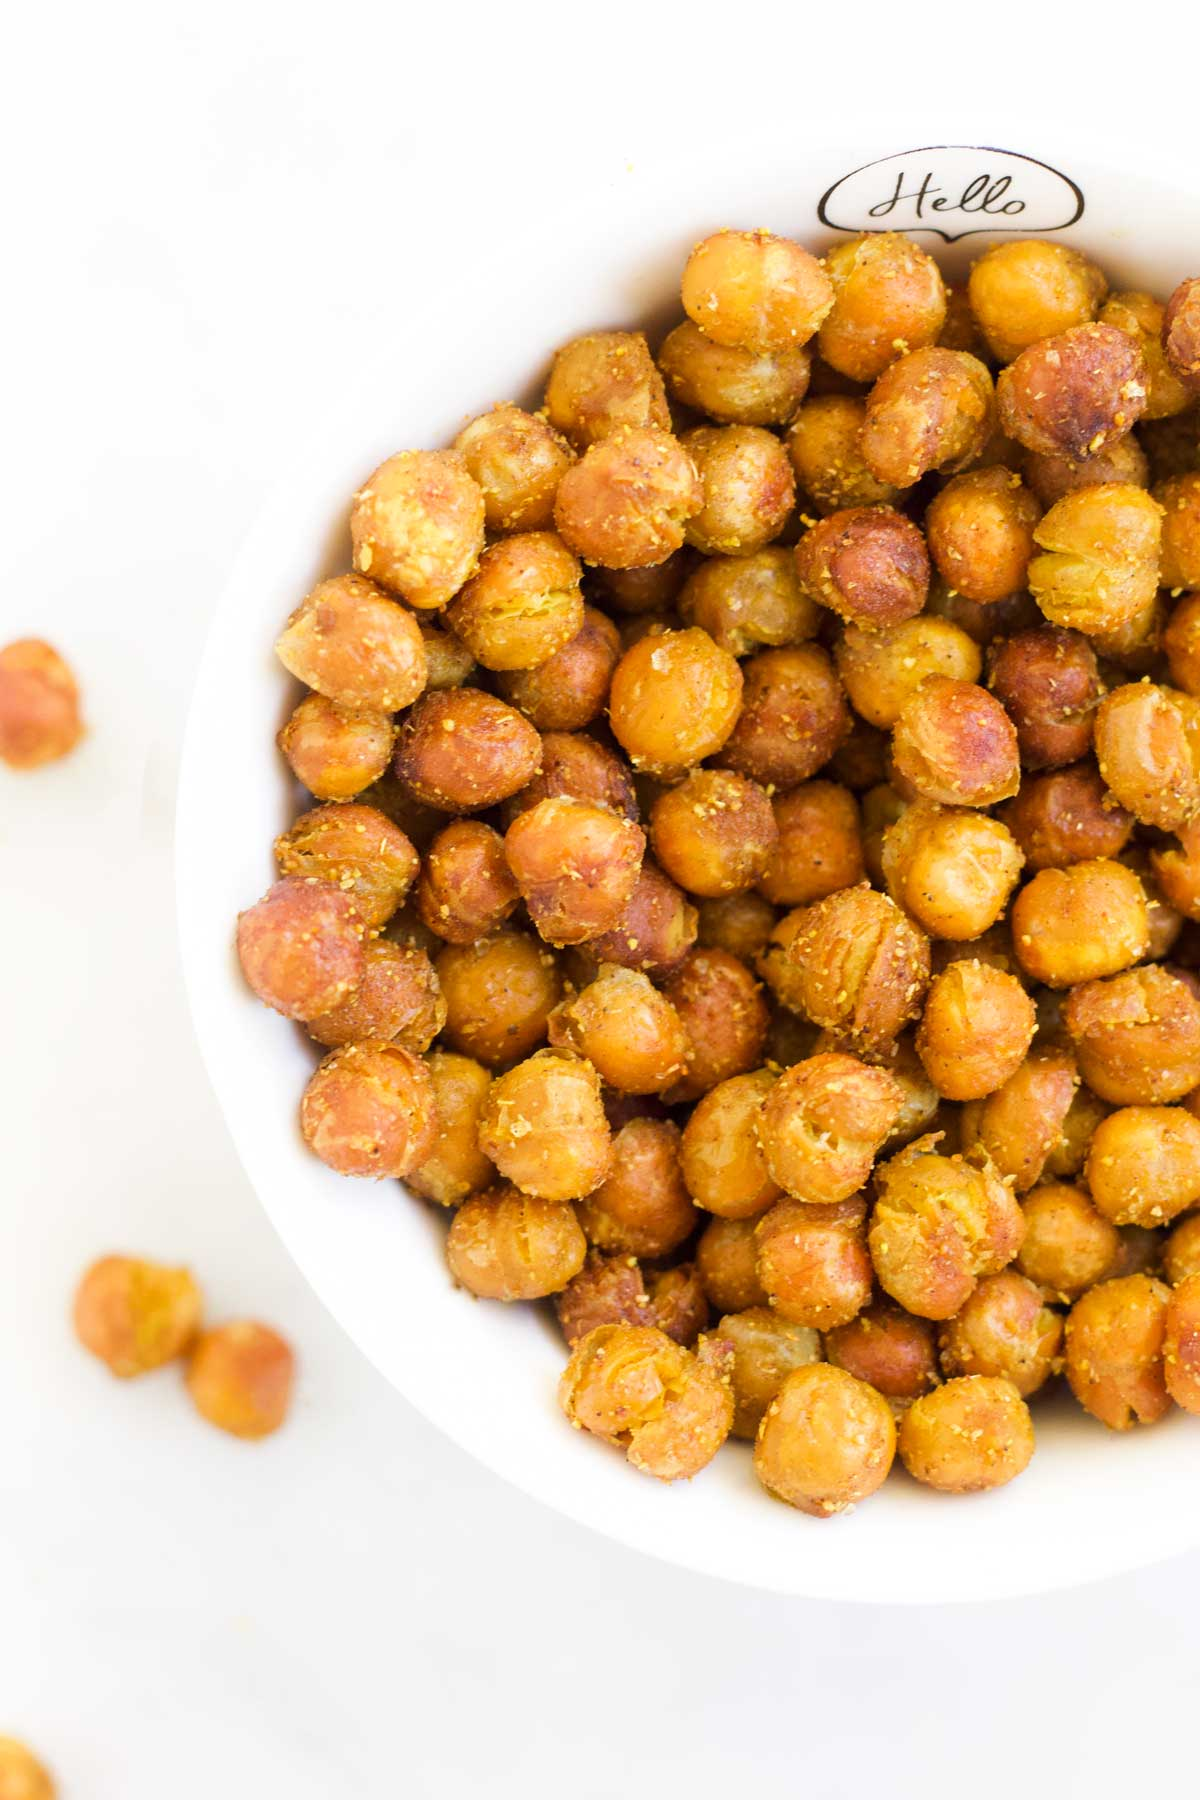 Baked Chickpeas in a Bowl